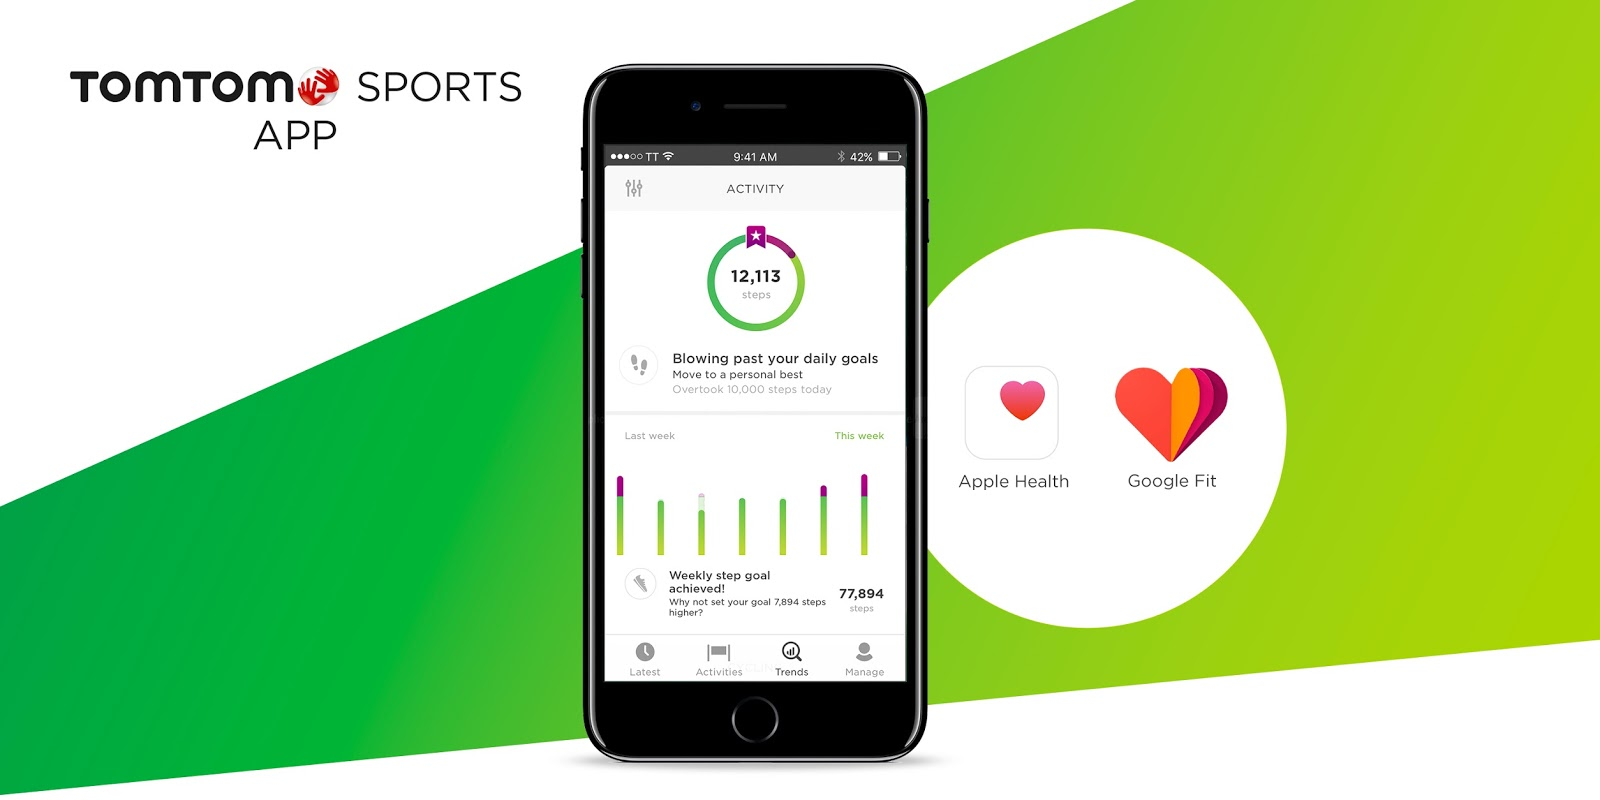 TomTom Sports App Now Works To Bring In Google Fit Data